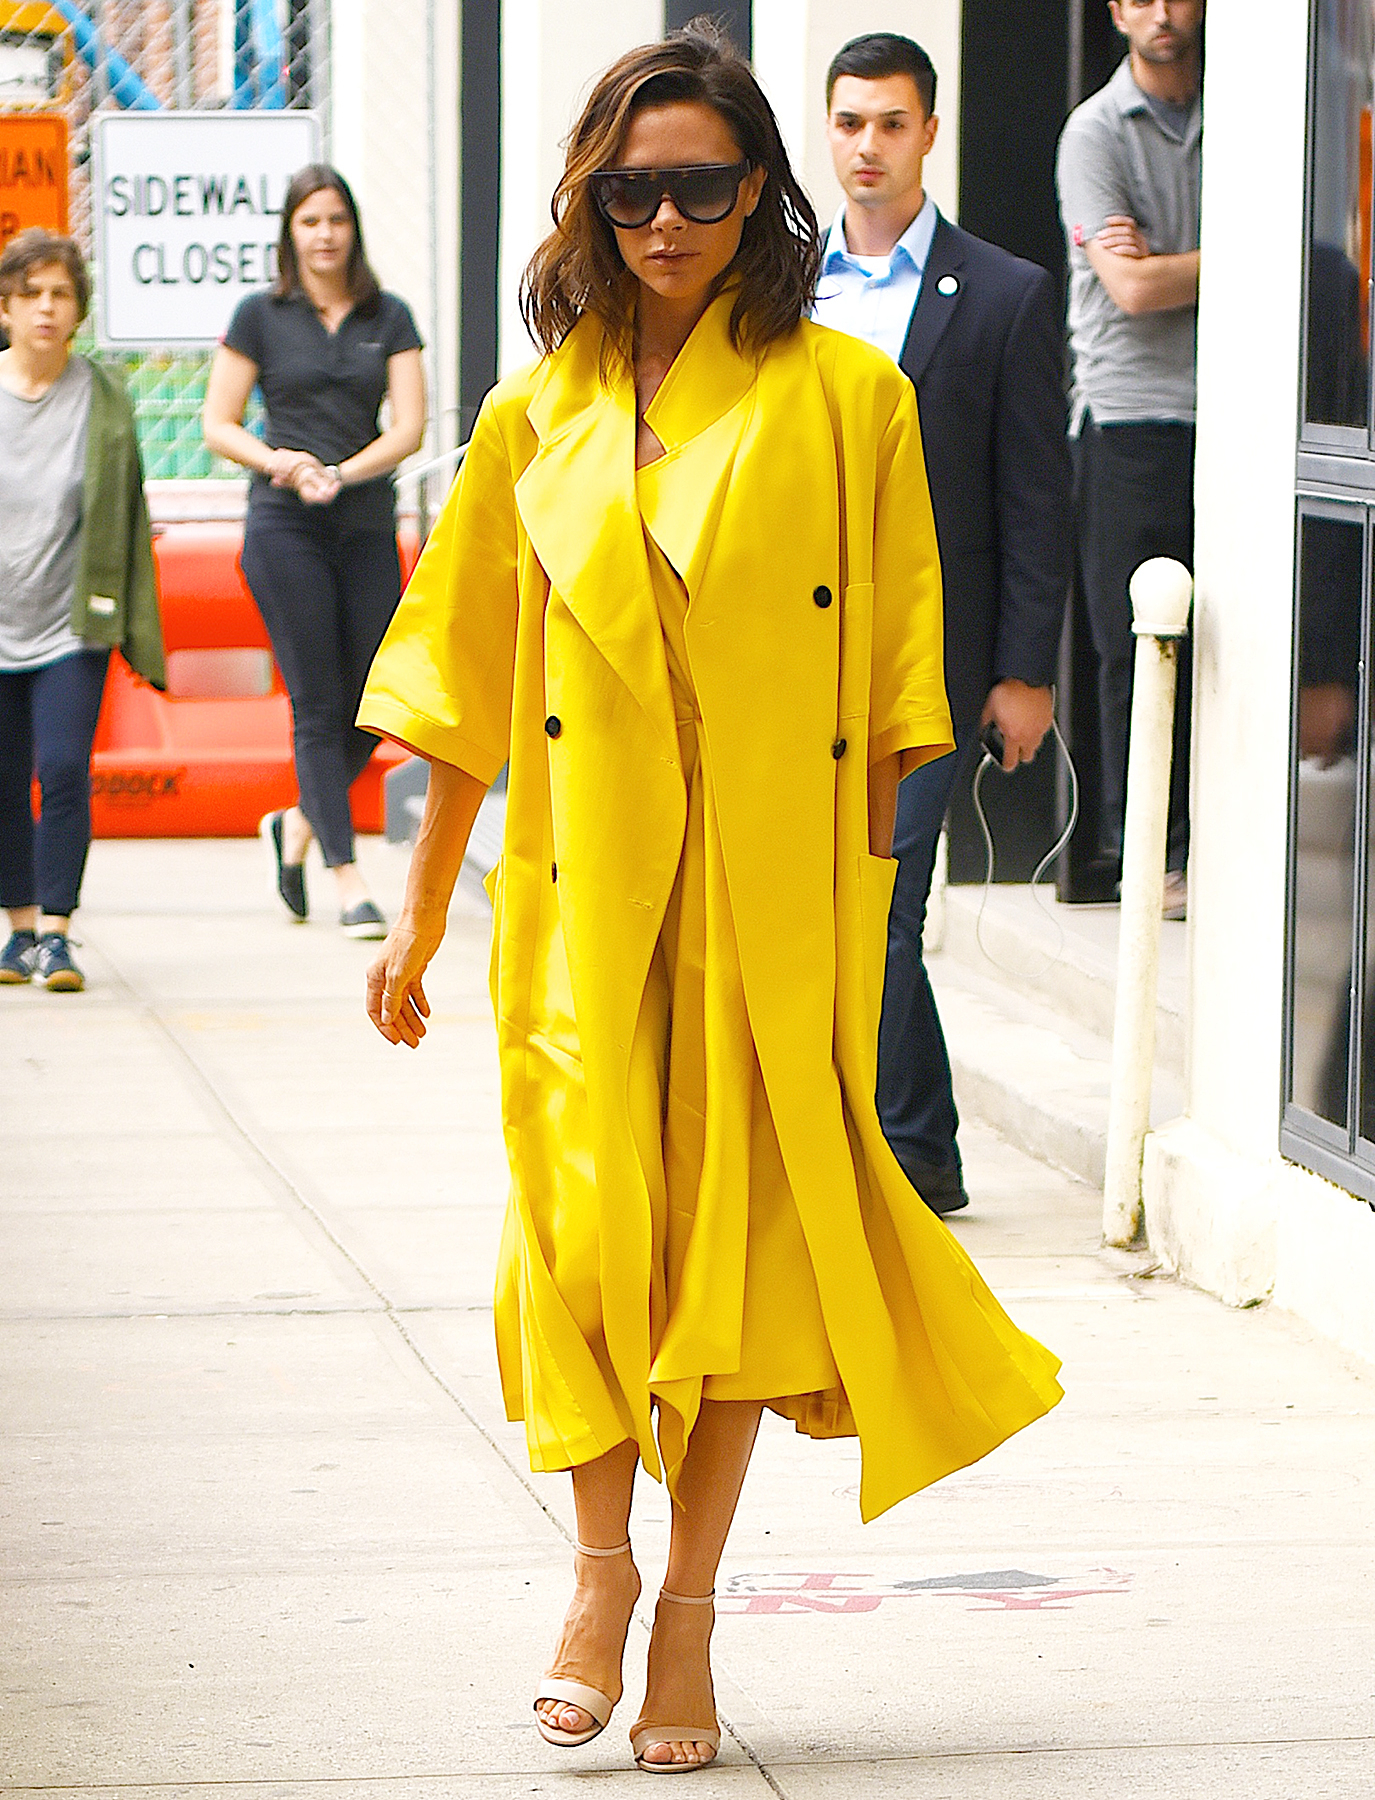 Whoa Victoria Beckham Just Wore a Whole Lot of Yellow